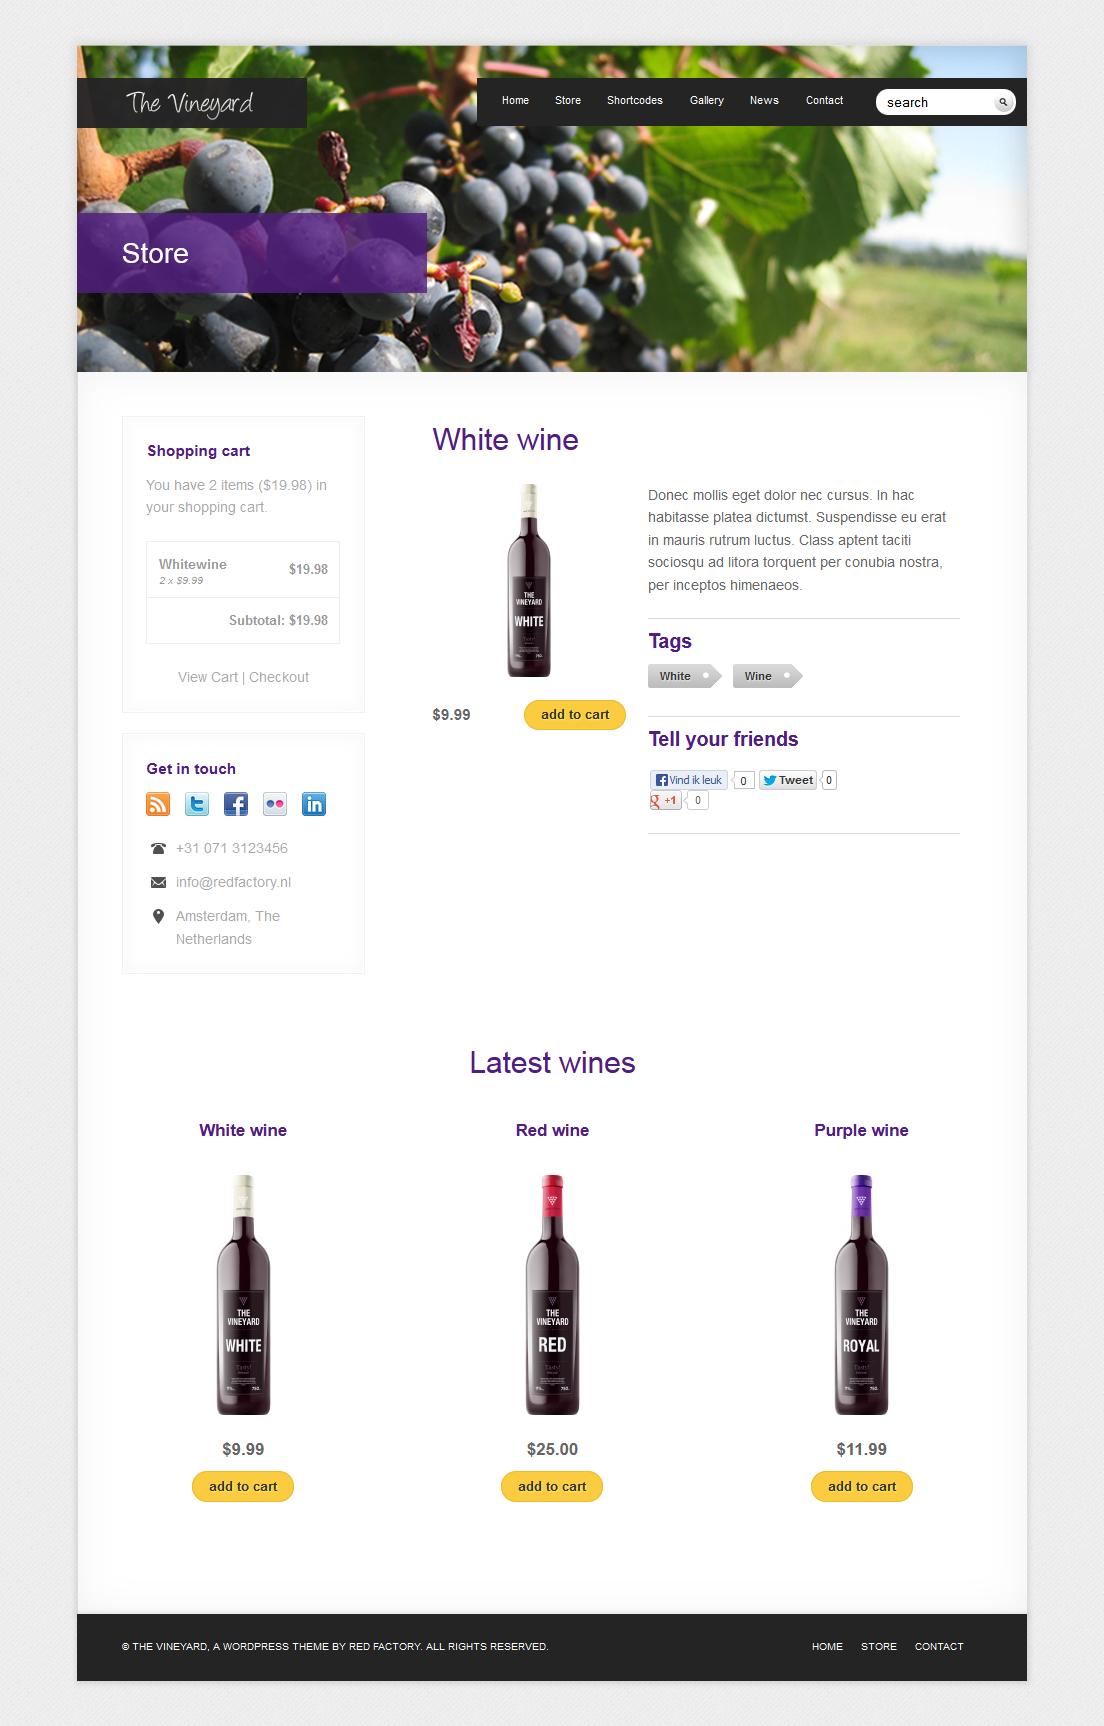 The Vineyard: A WordPress eCommerce Theme